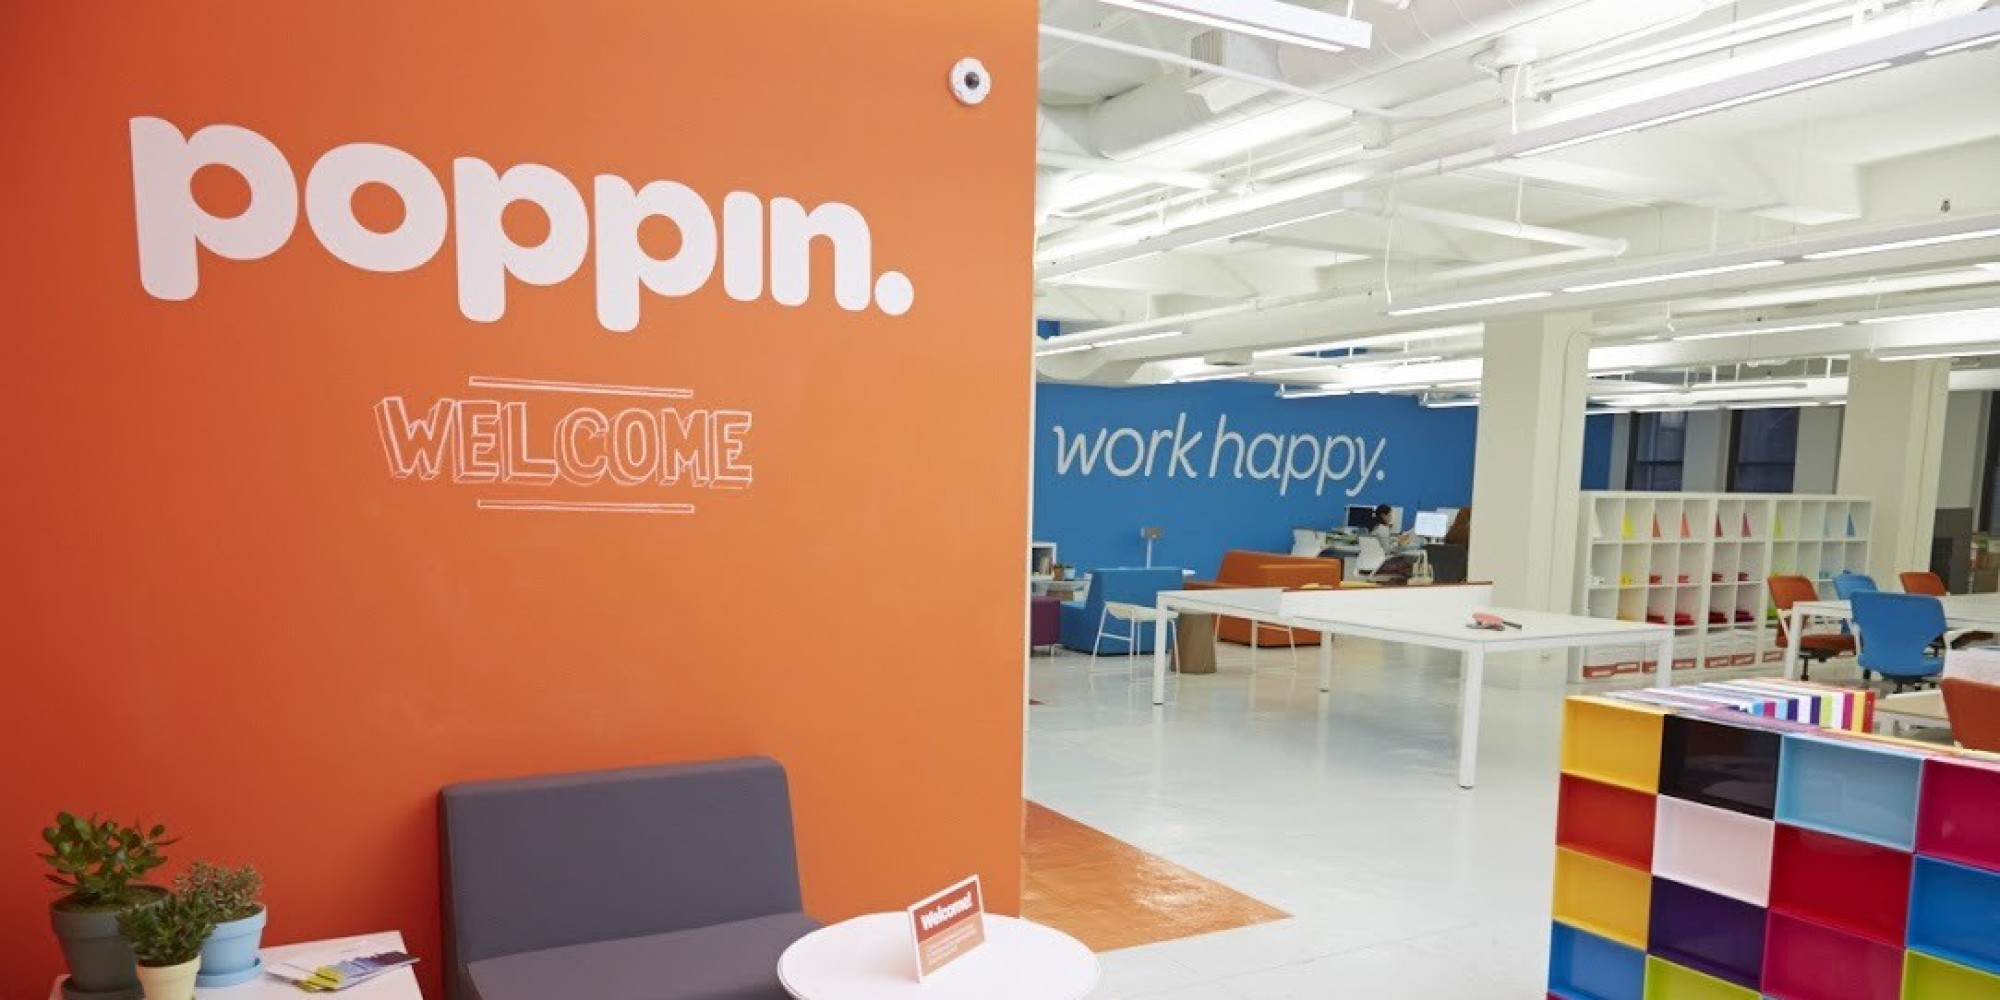 Poppin S Work Happy Slogan Starts With Its Own Employees